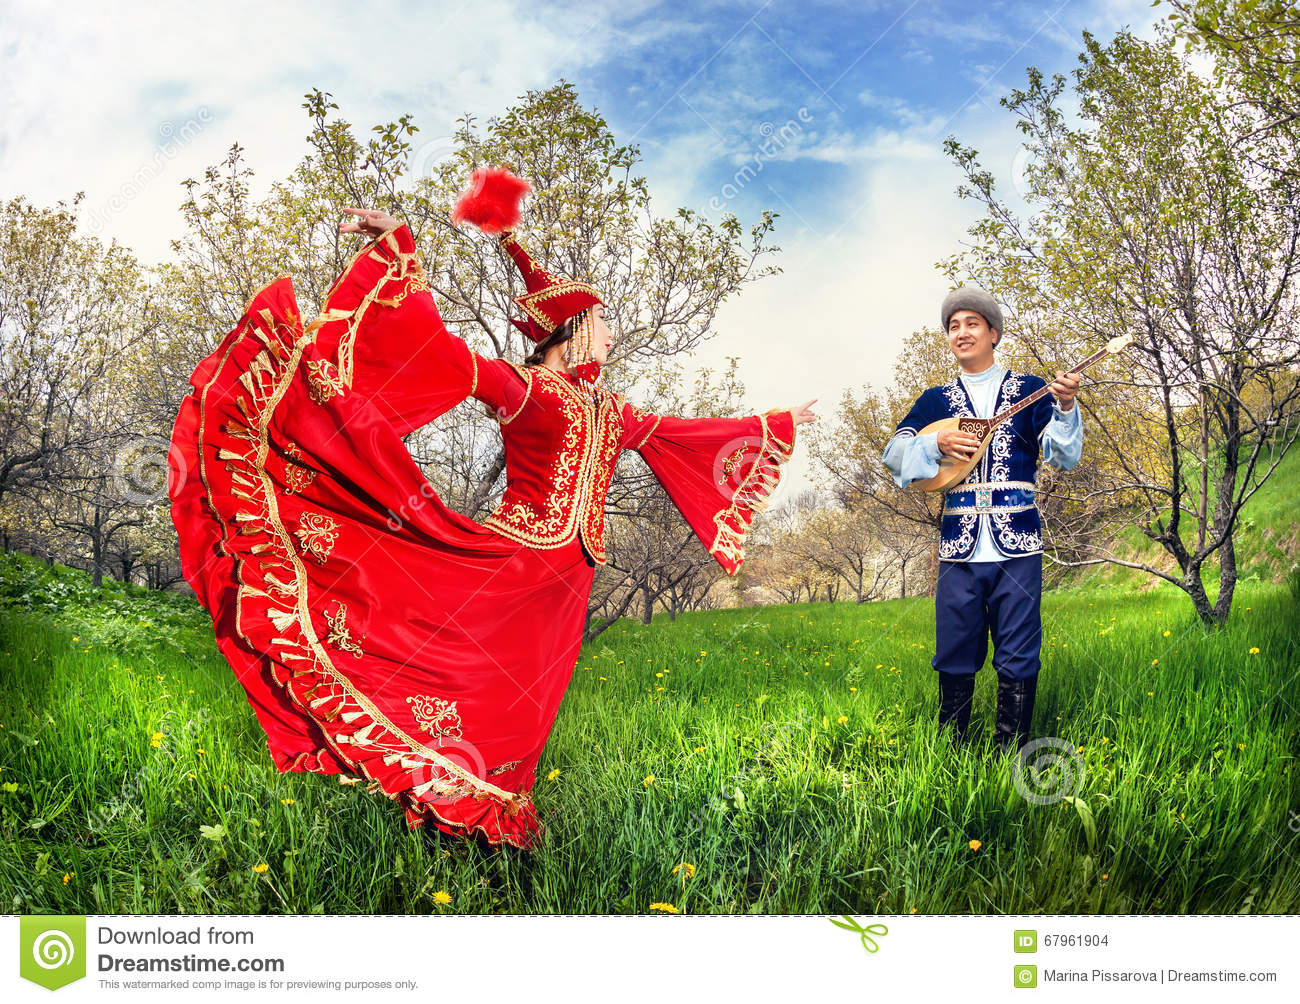 Download Kazakh Couple In Traditional Costume Stock Photo - Image of blooming, dance: 67961904